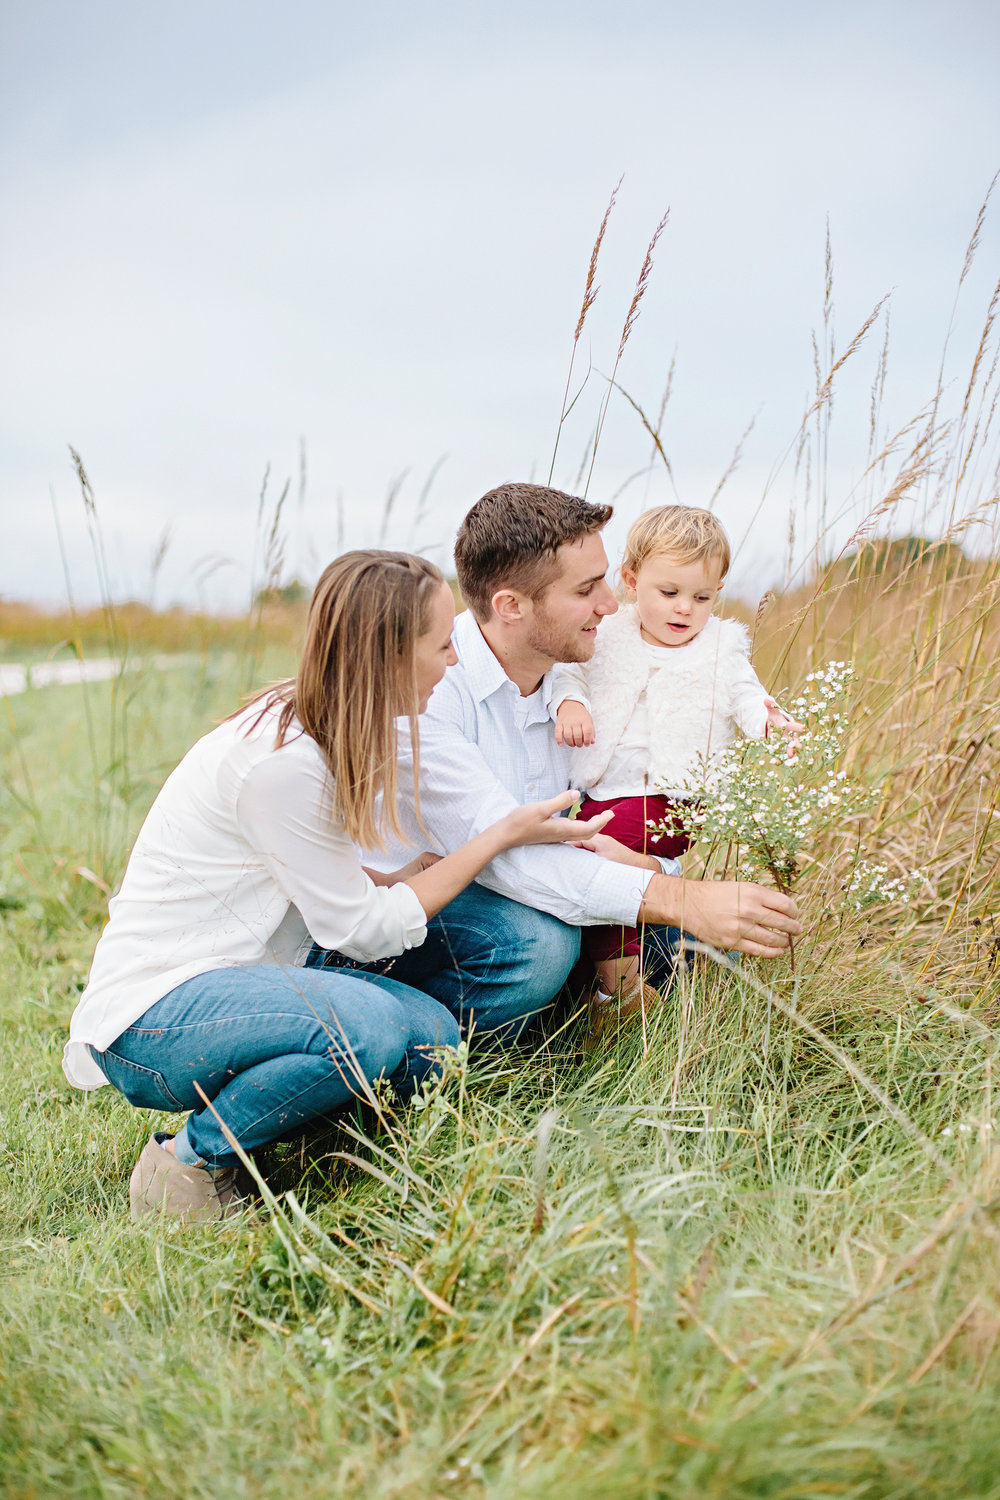 Picking Flowers | Family Photography | Elgin, Illinois | Cassie Schott Photography